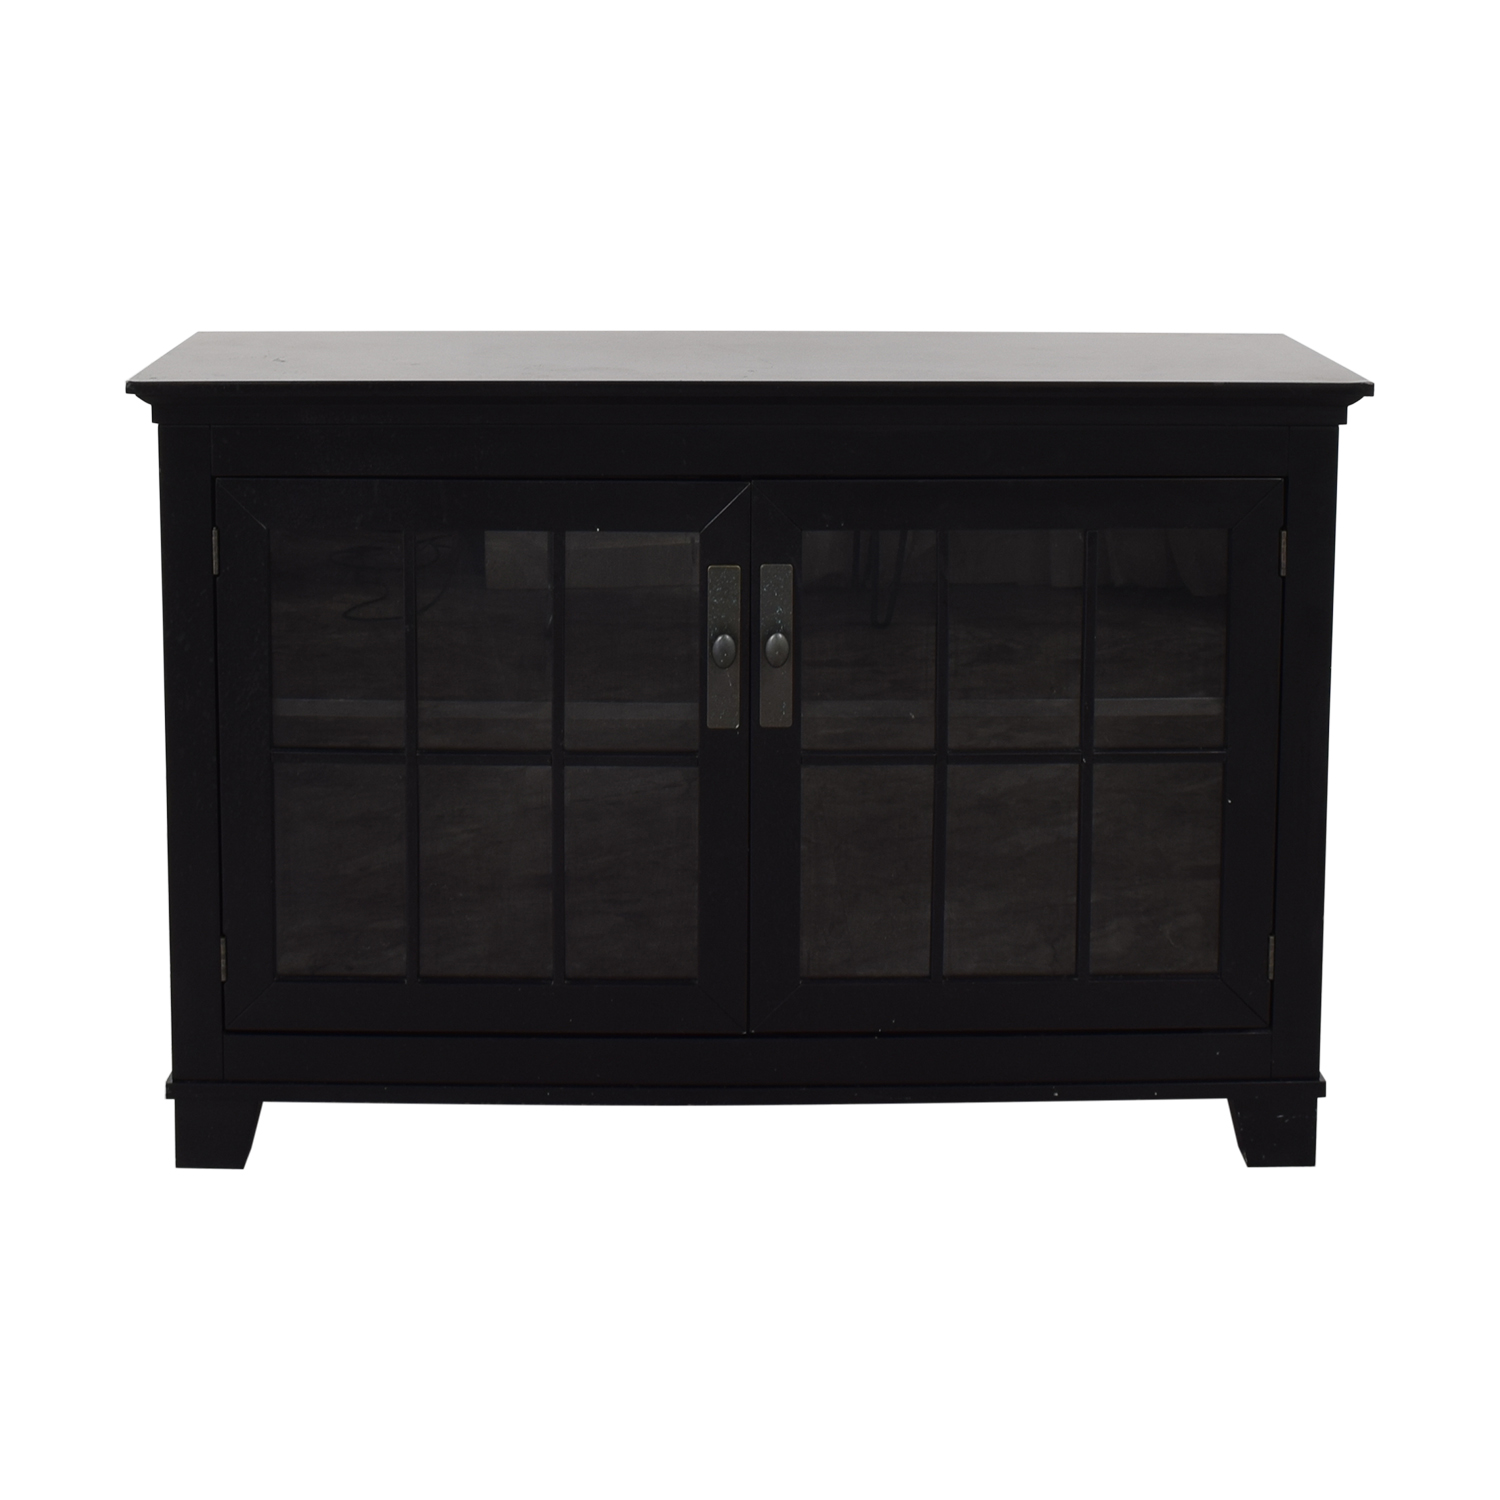 Crate & Barrel Crate & Barrel Buffet Cabinet on sale